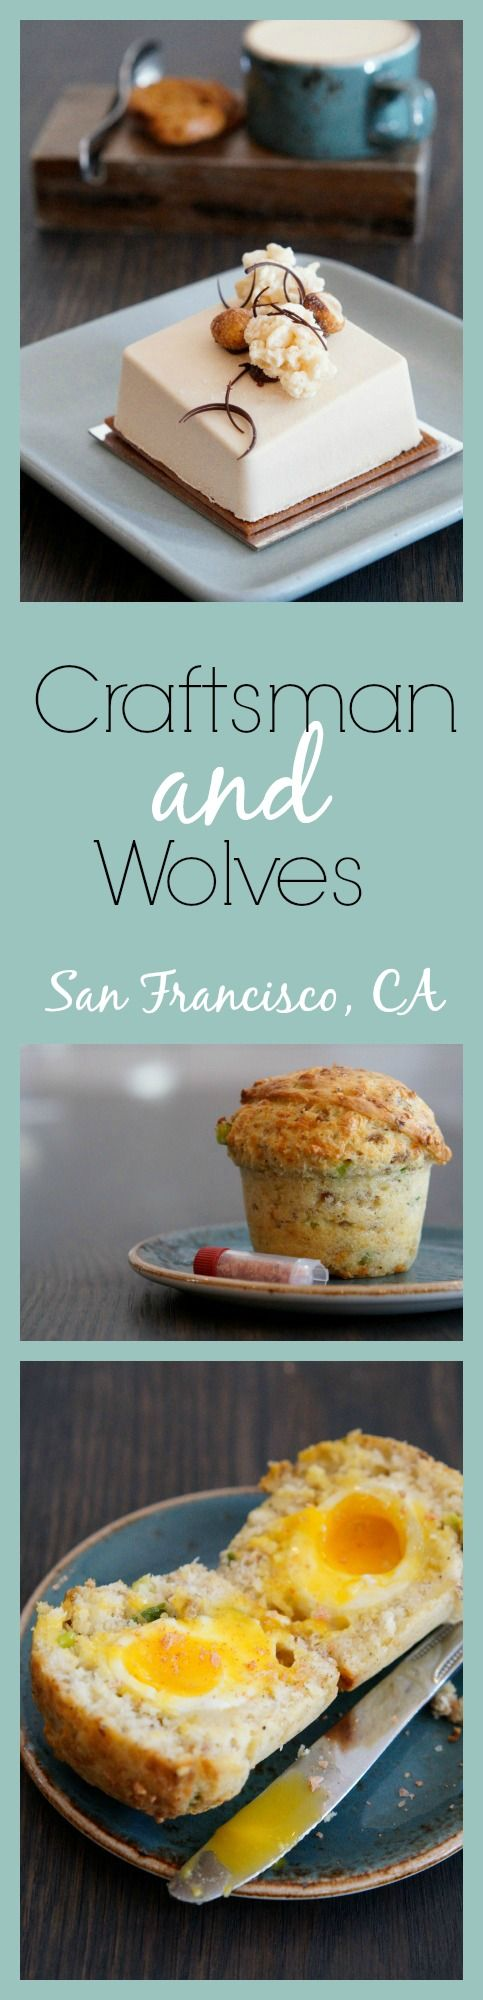 Craftsman and Wolves, a unique bakery/cafe in San Francisco, CA